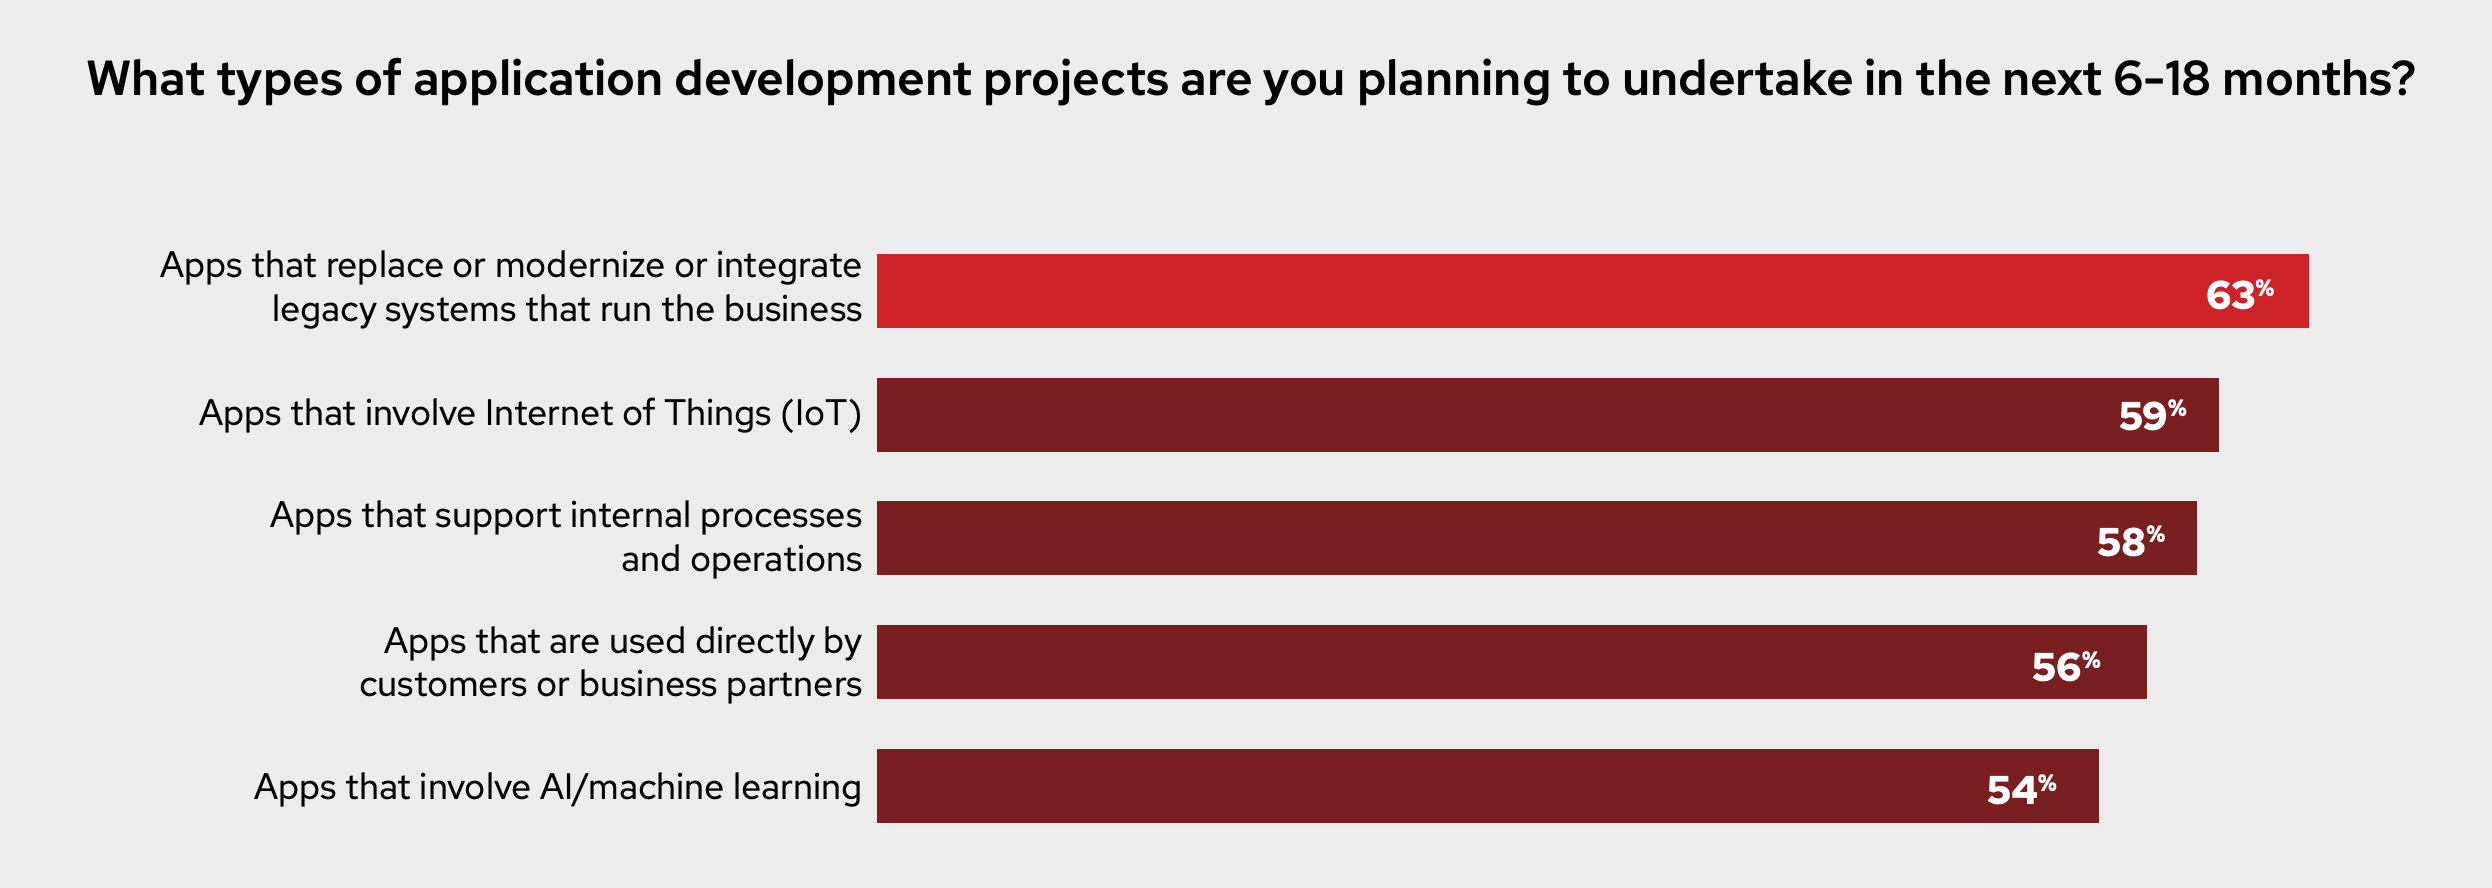 What types of application development projects are you planning to undertake in the next 6-18 months? Figure 5: Application development projects